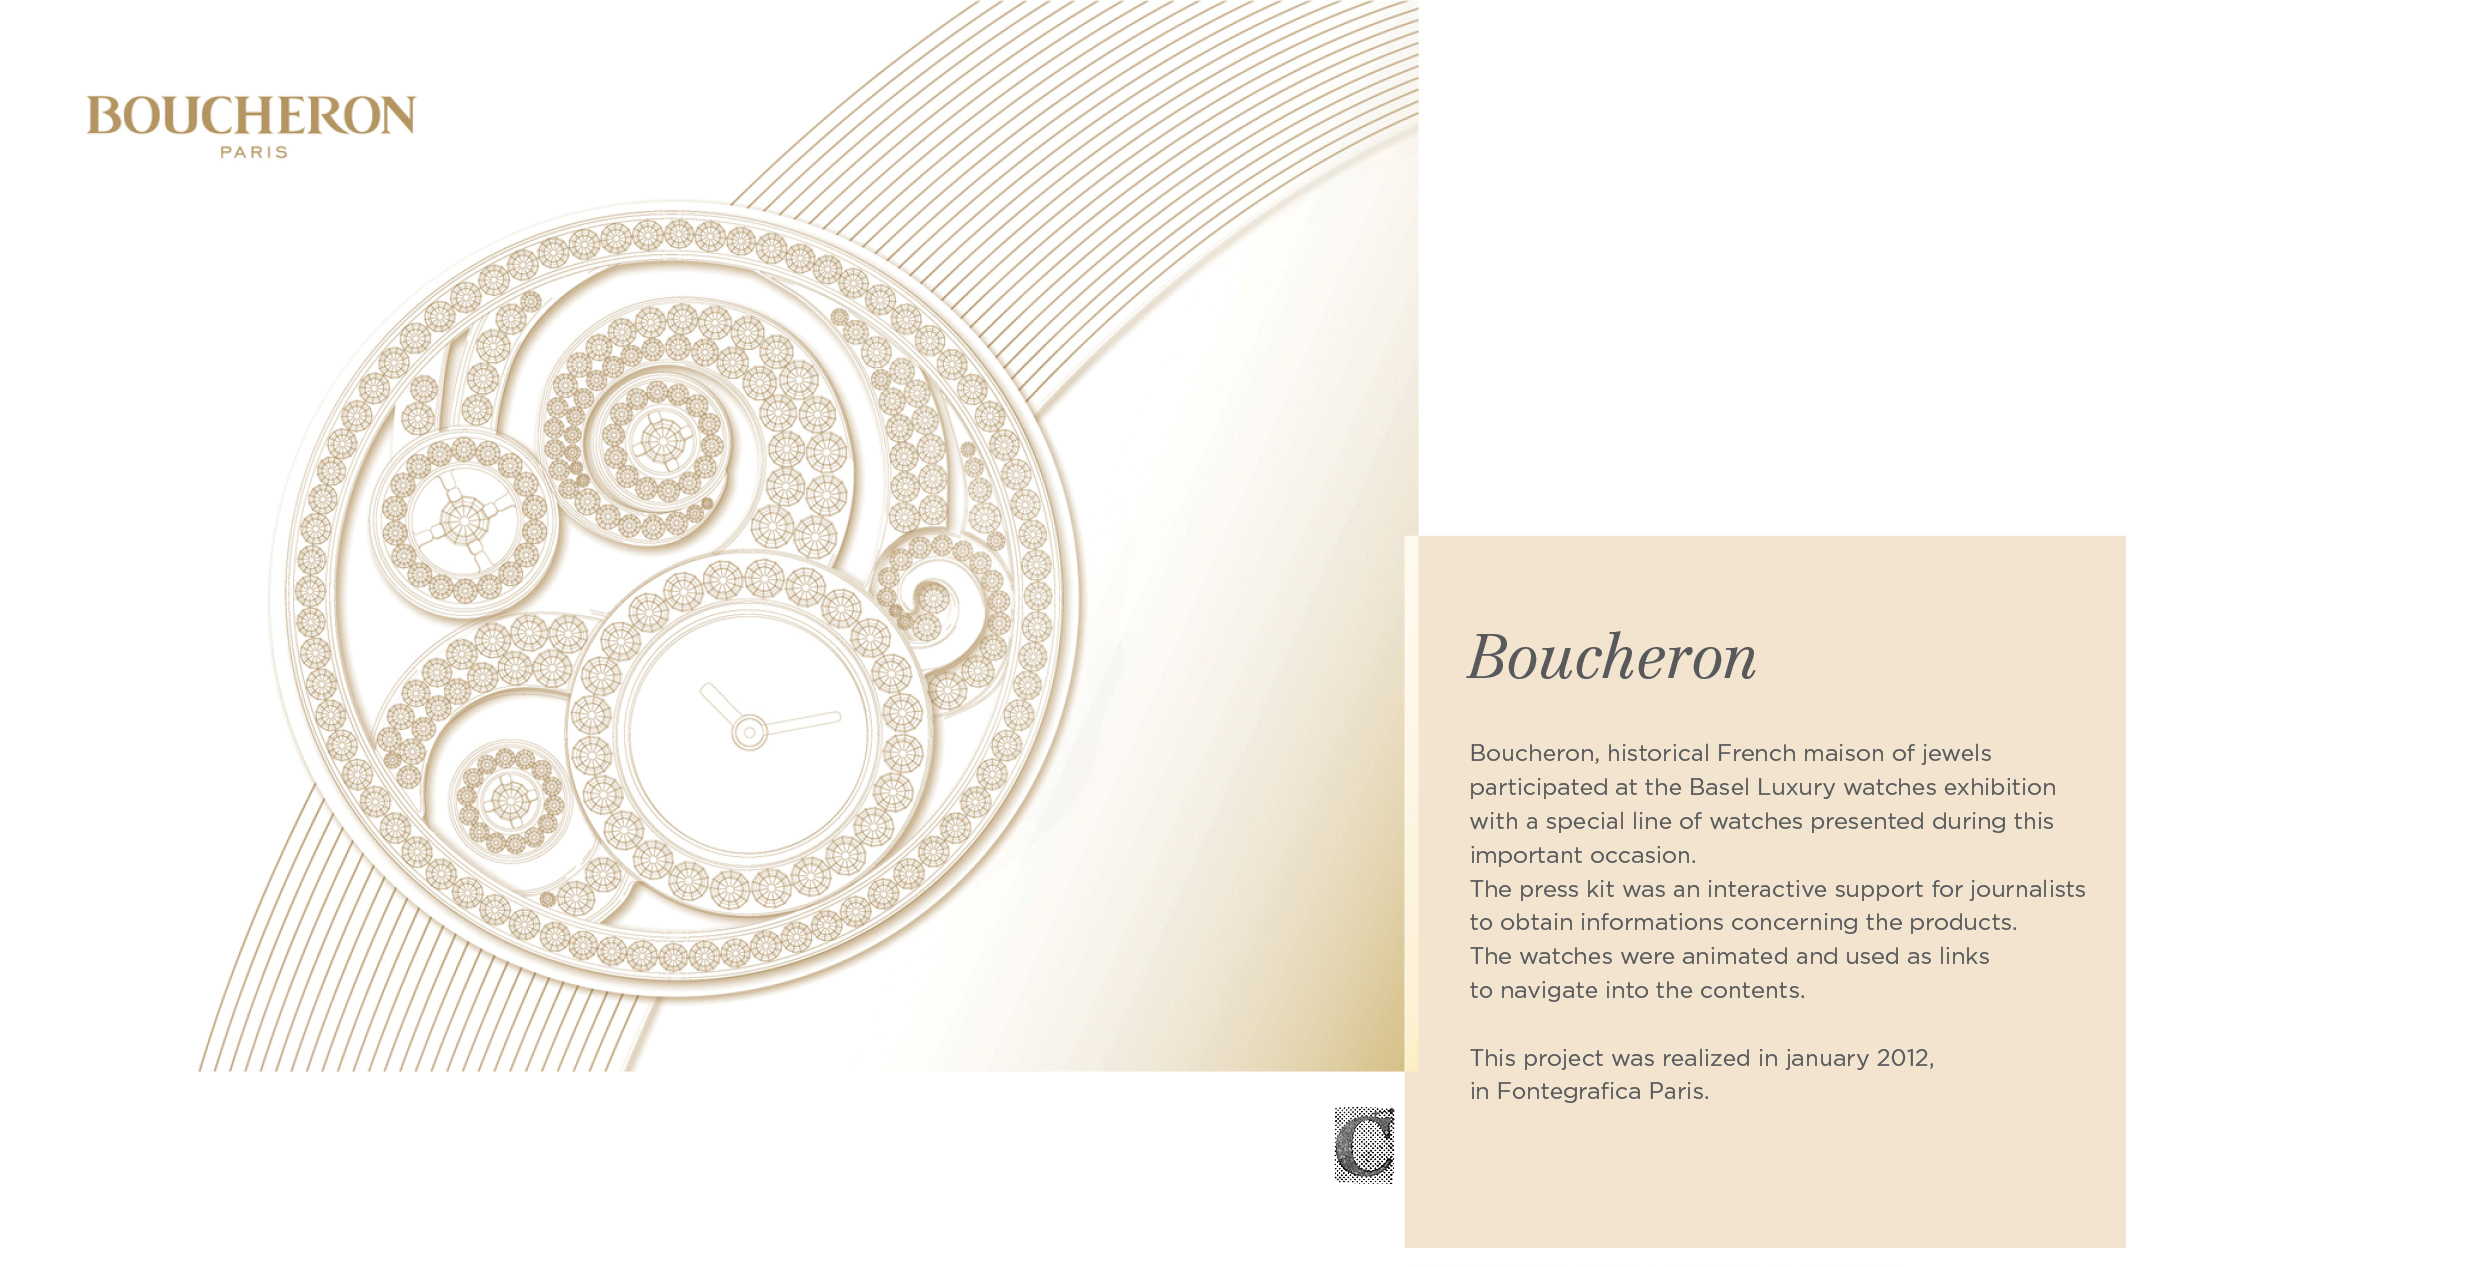 Boucheron_Illustration